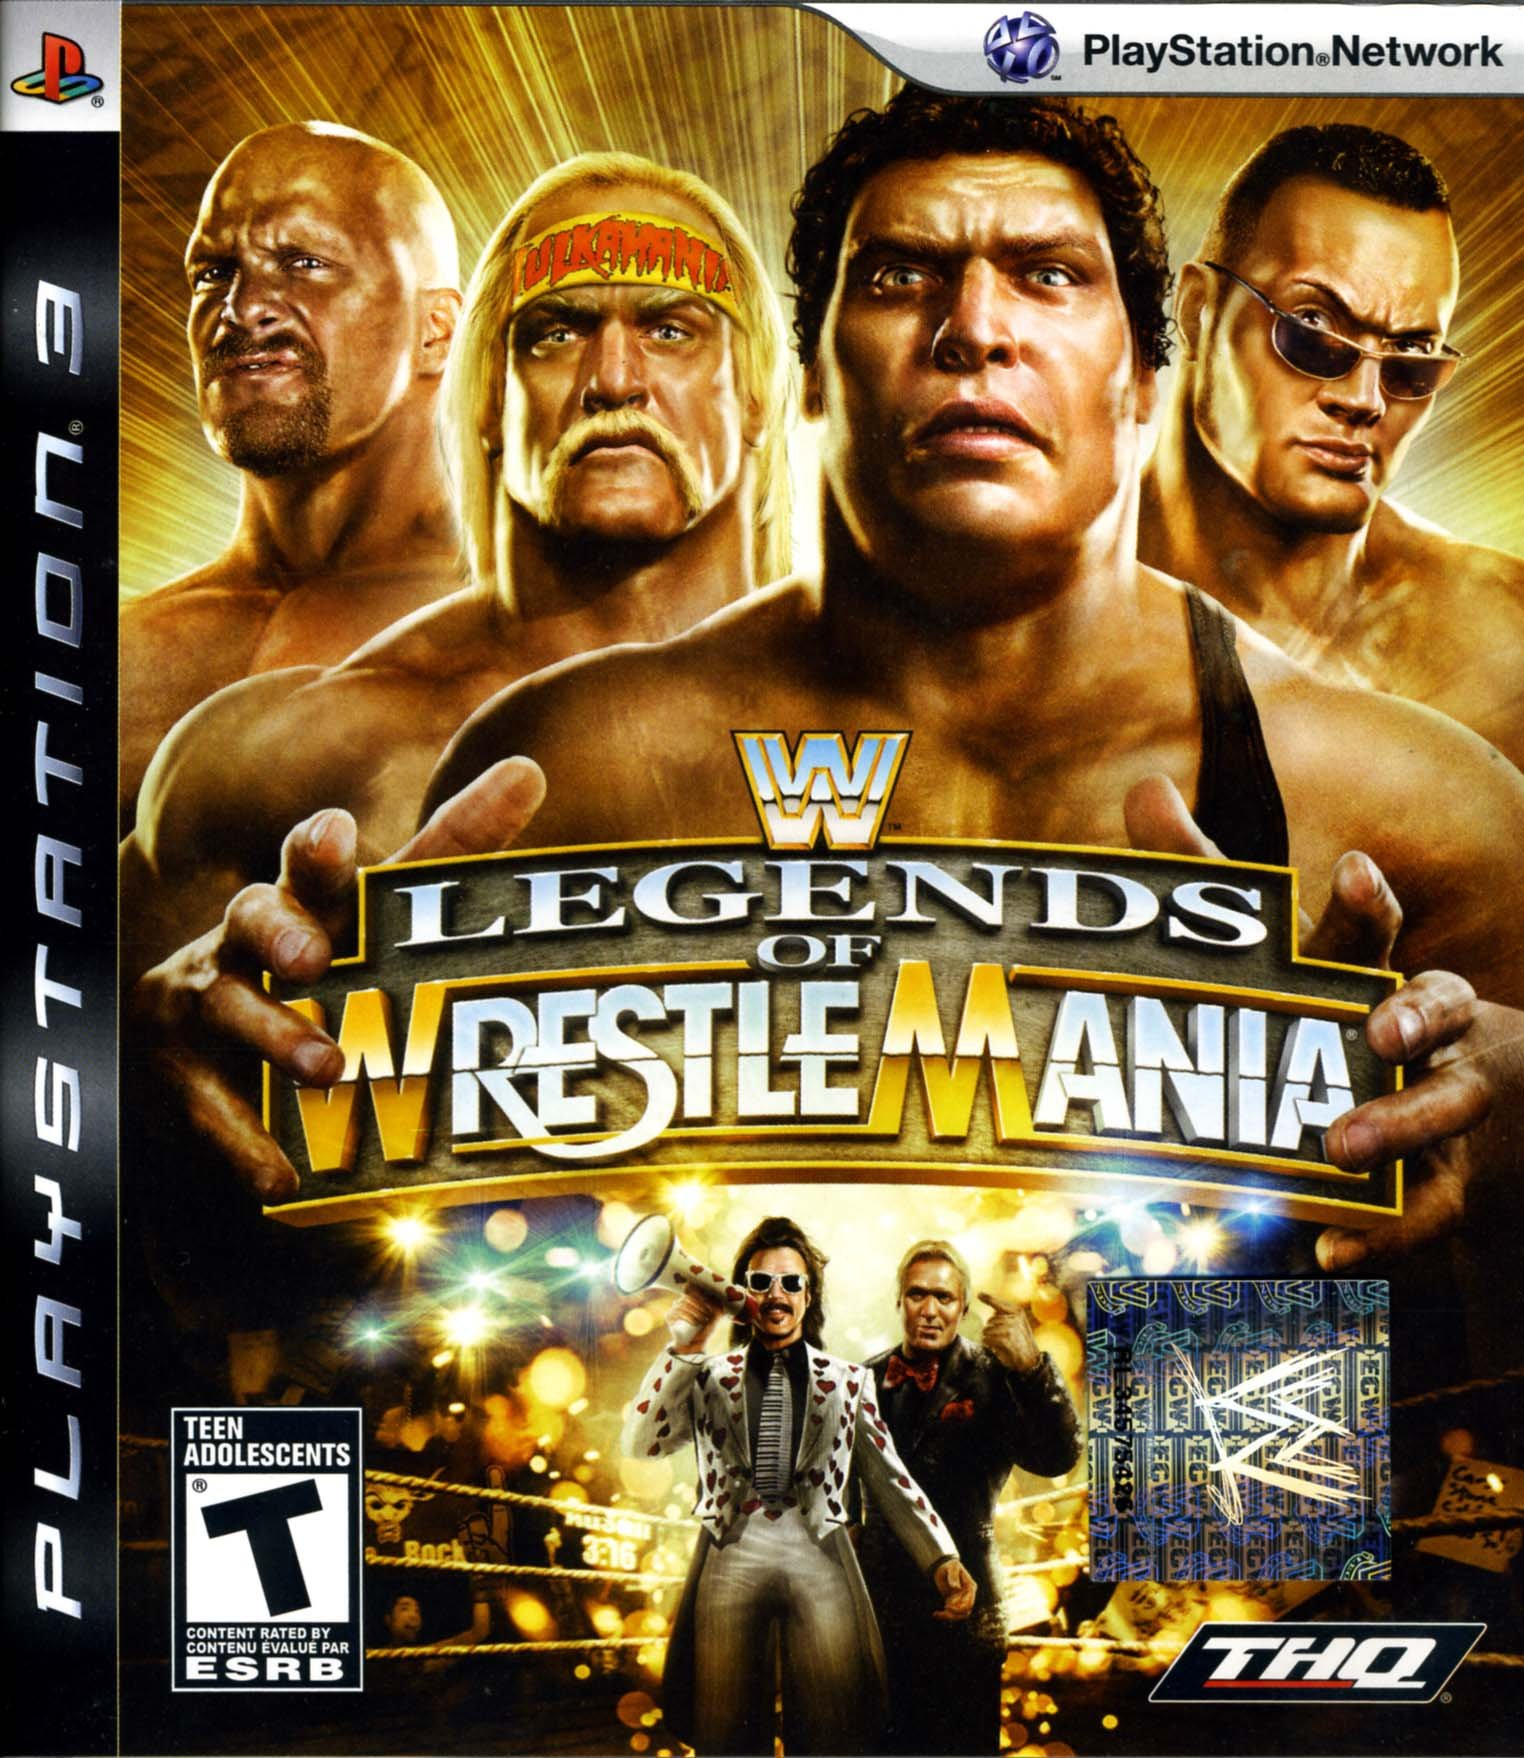 New Wrestling Game For Ps3 : Wwe legends of wrestlemania release date xbox ps